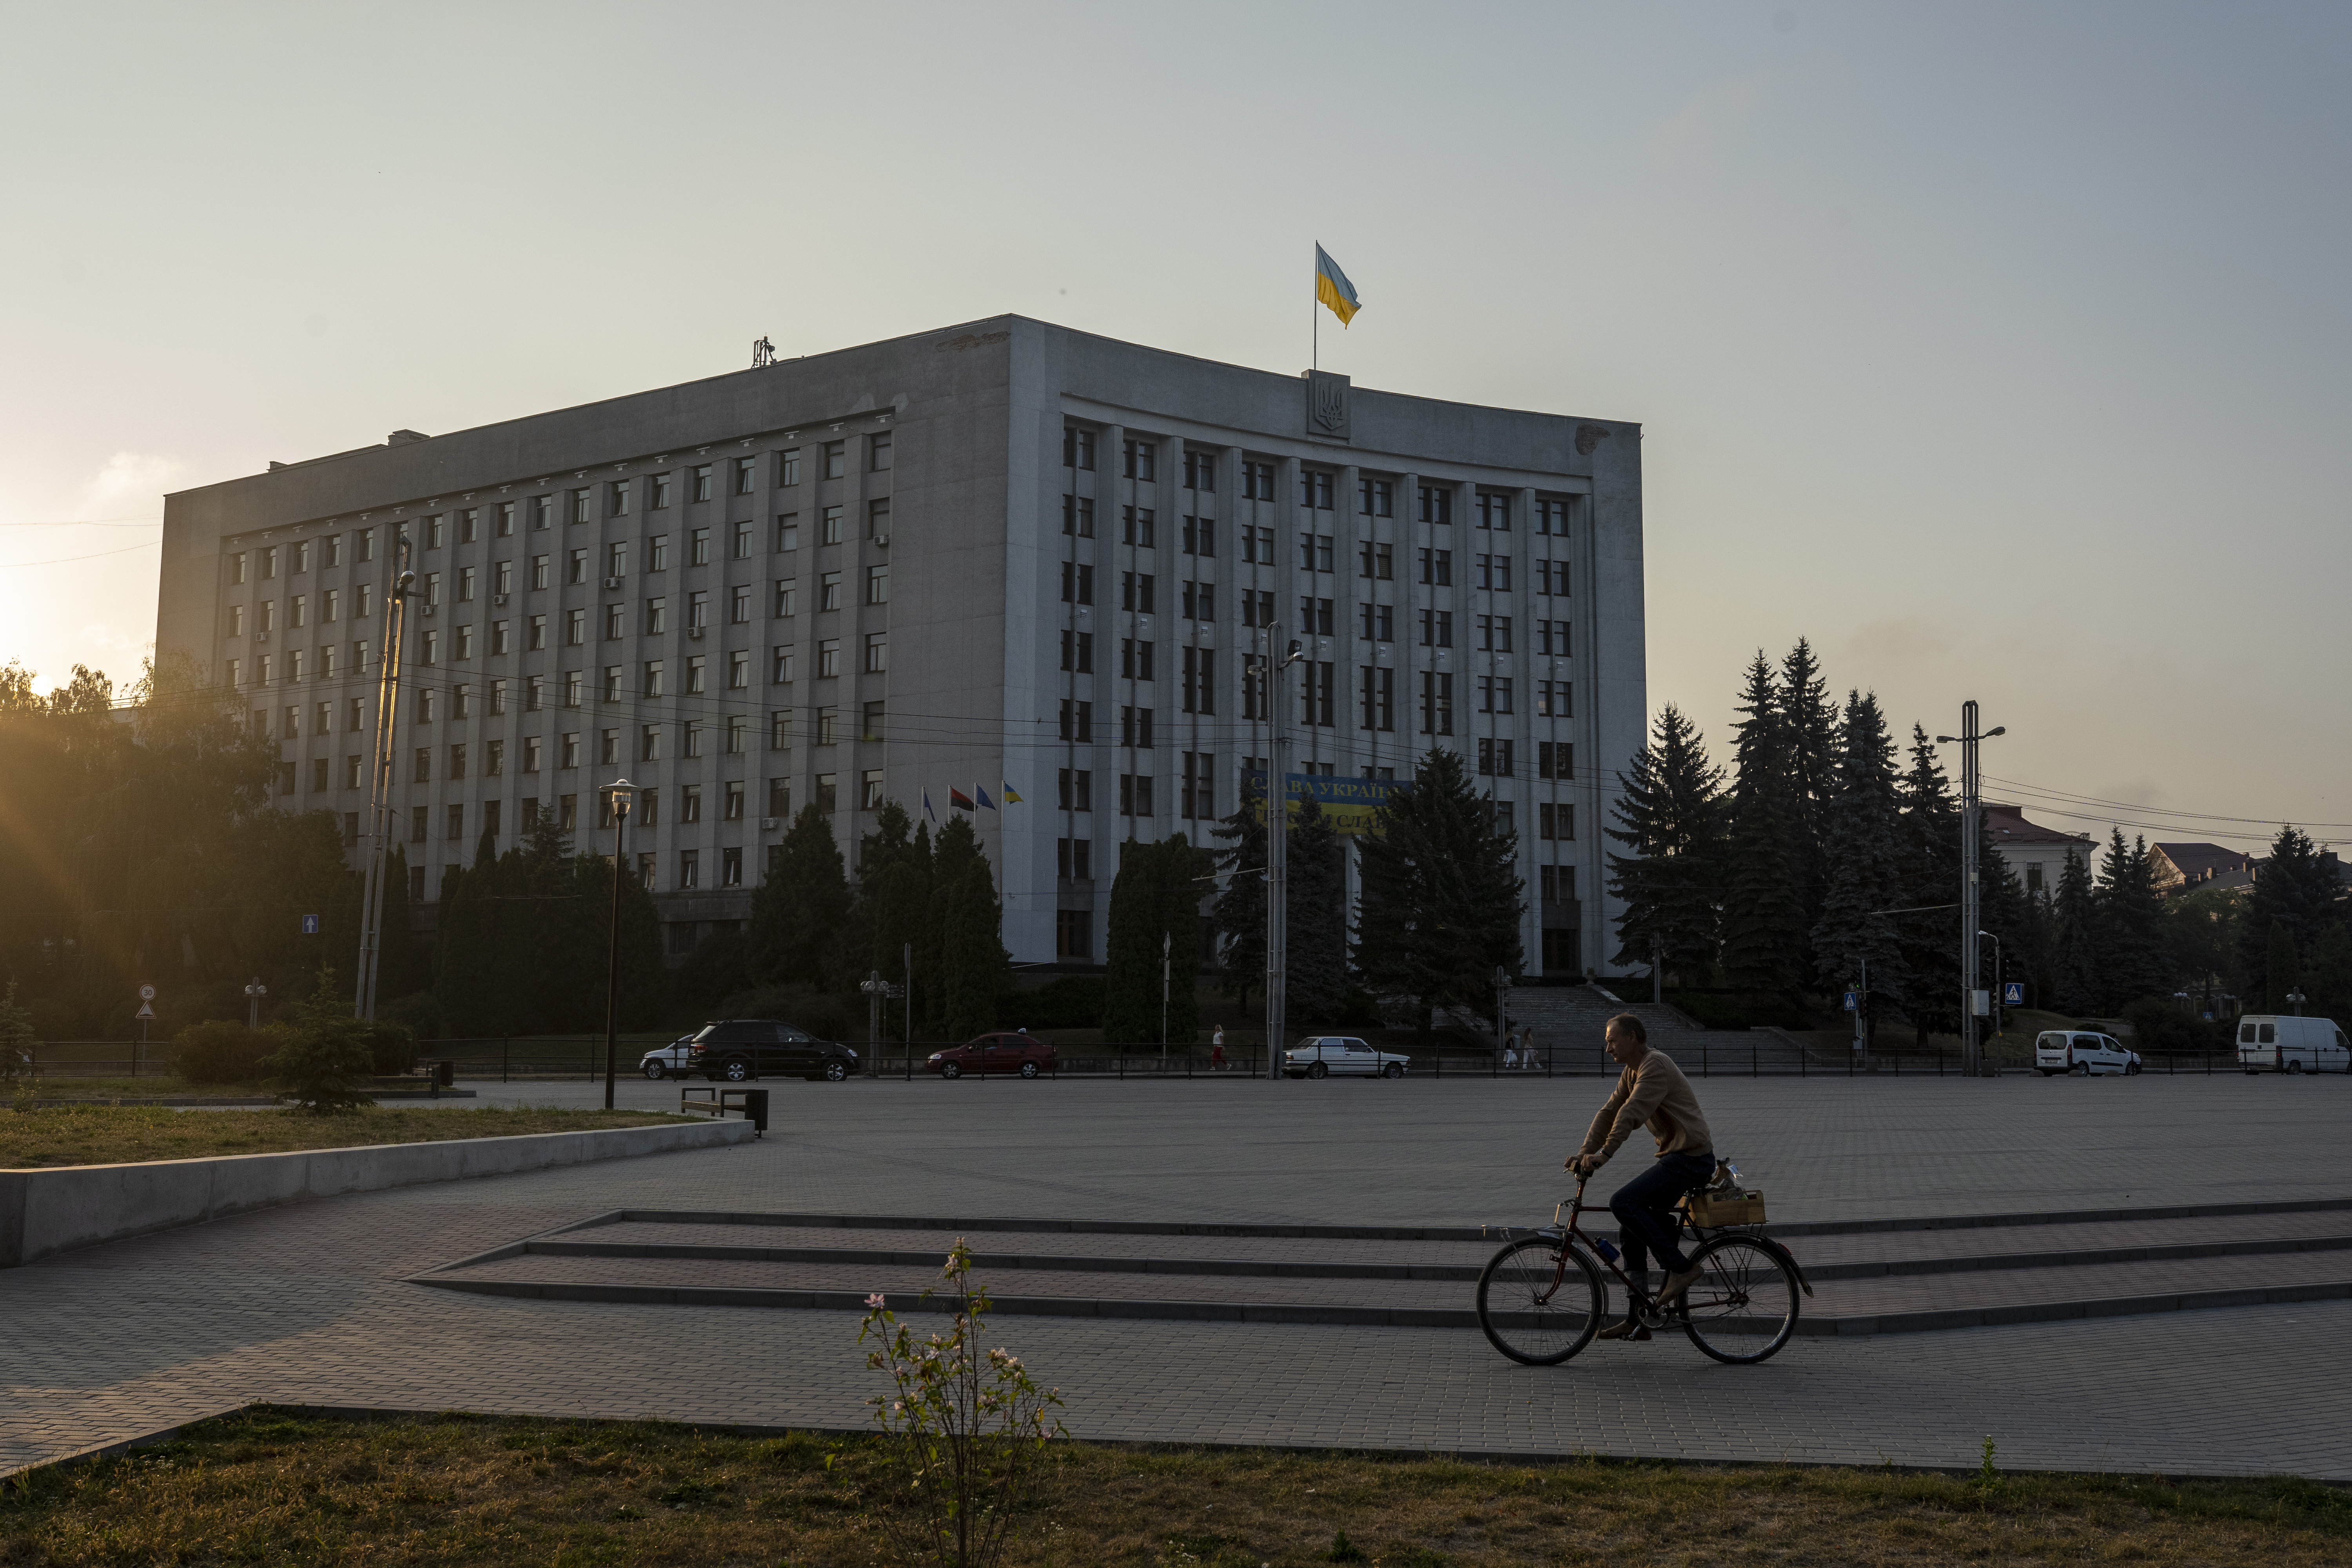 The Ternopil oblast regional council and administration building (AtlasNetwork.org Photo/Bernat Parera).